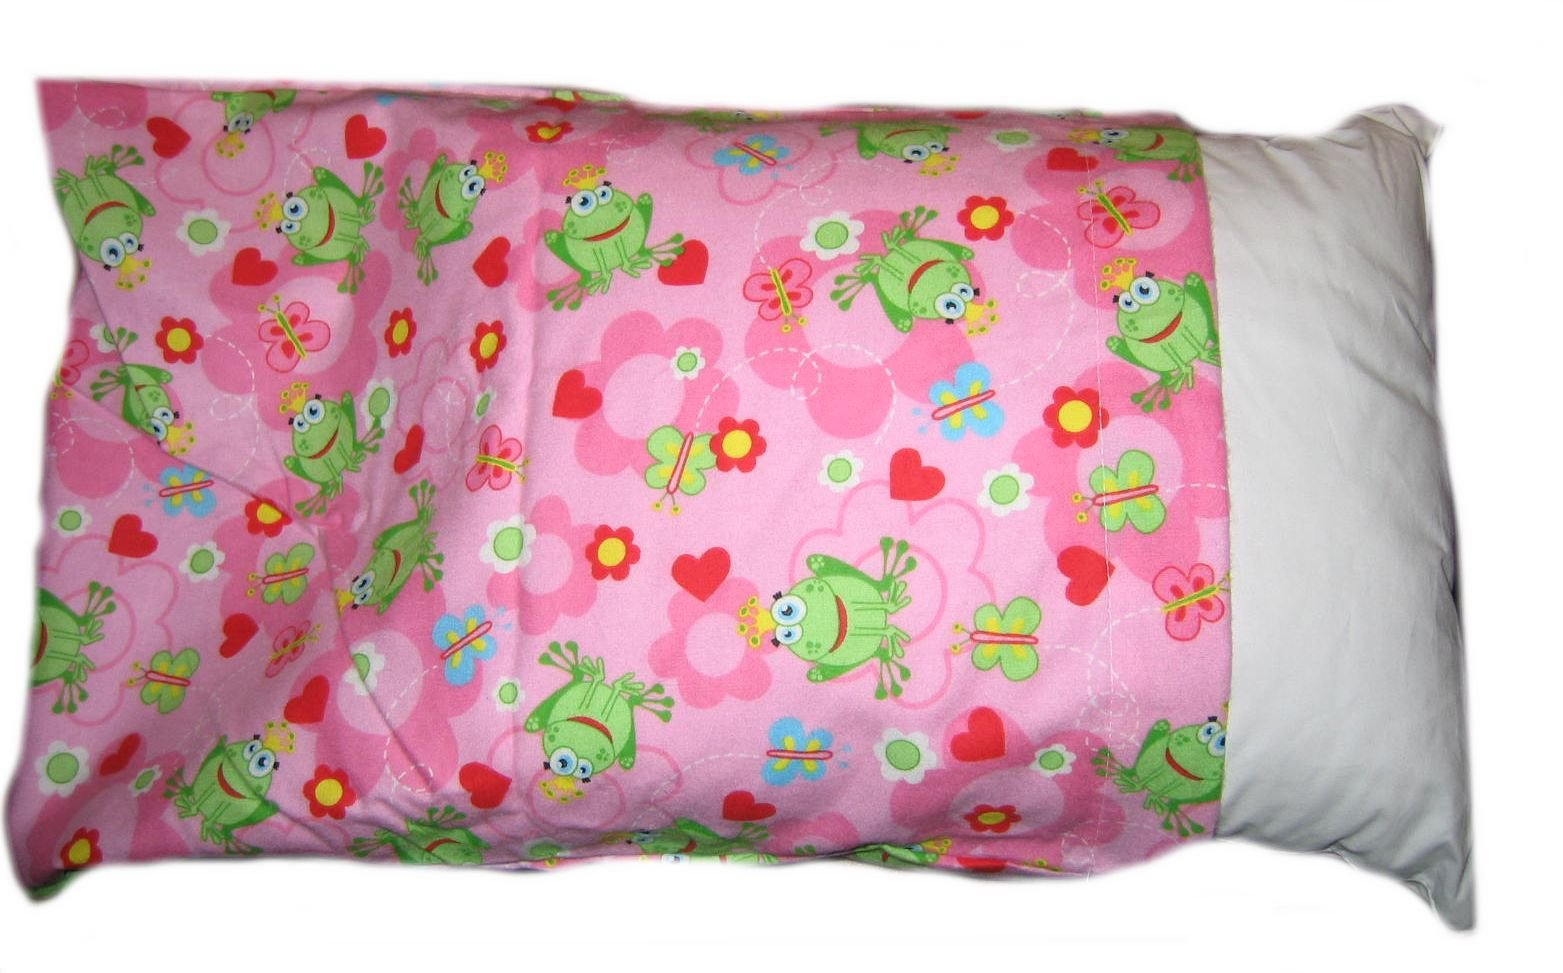 BobbleRoos - Our Blog: Toddler Pillow - How to use a ...